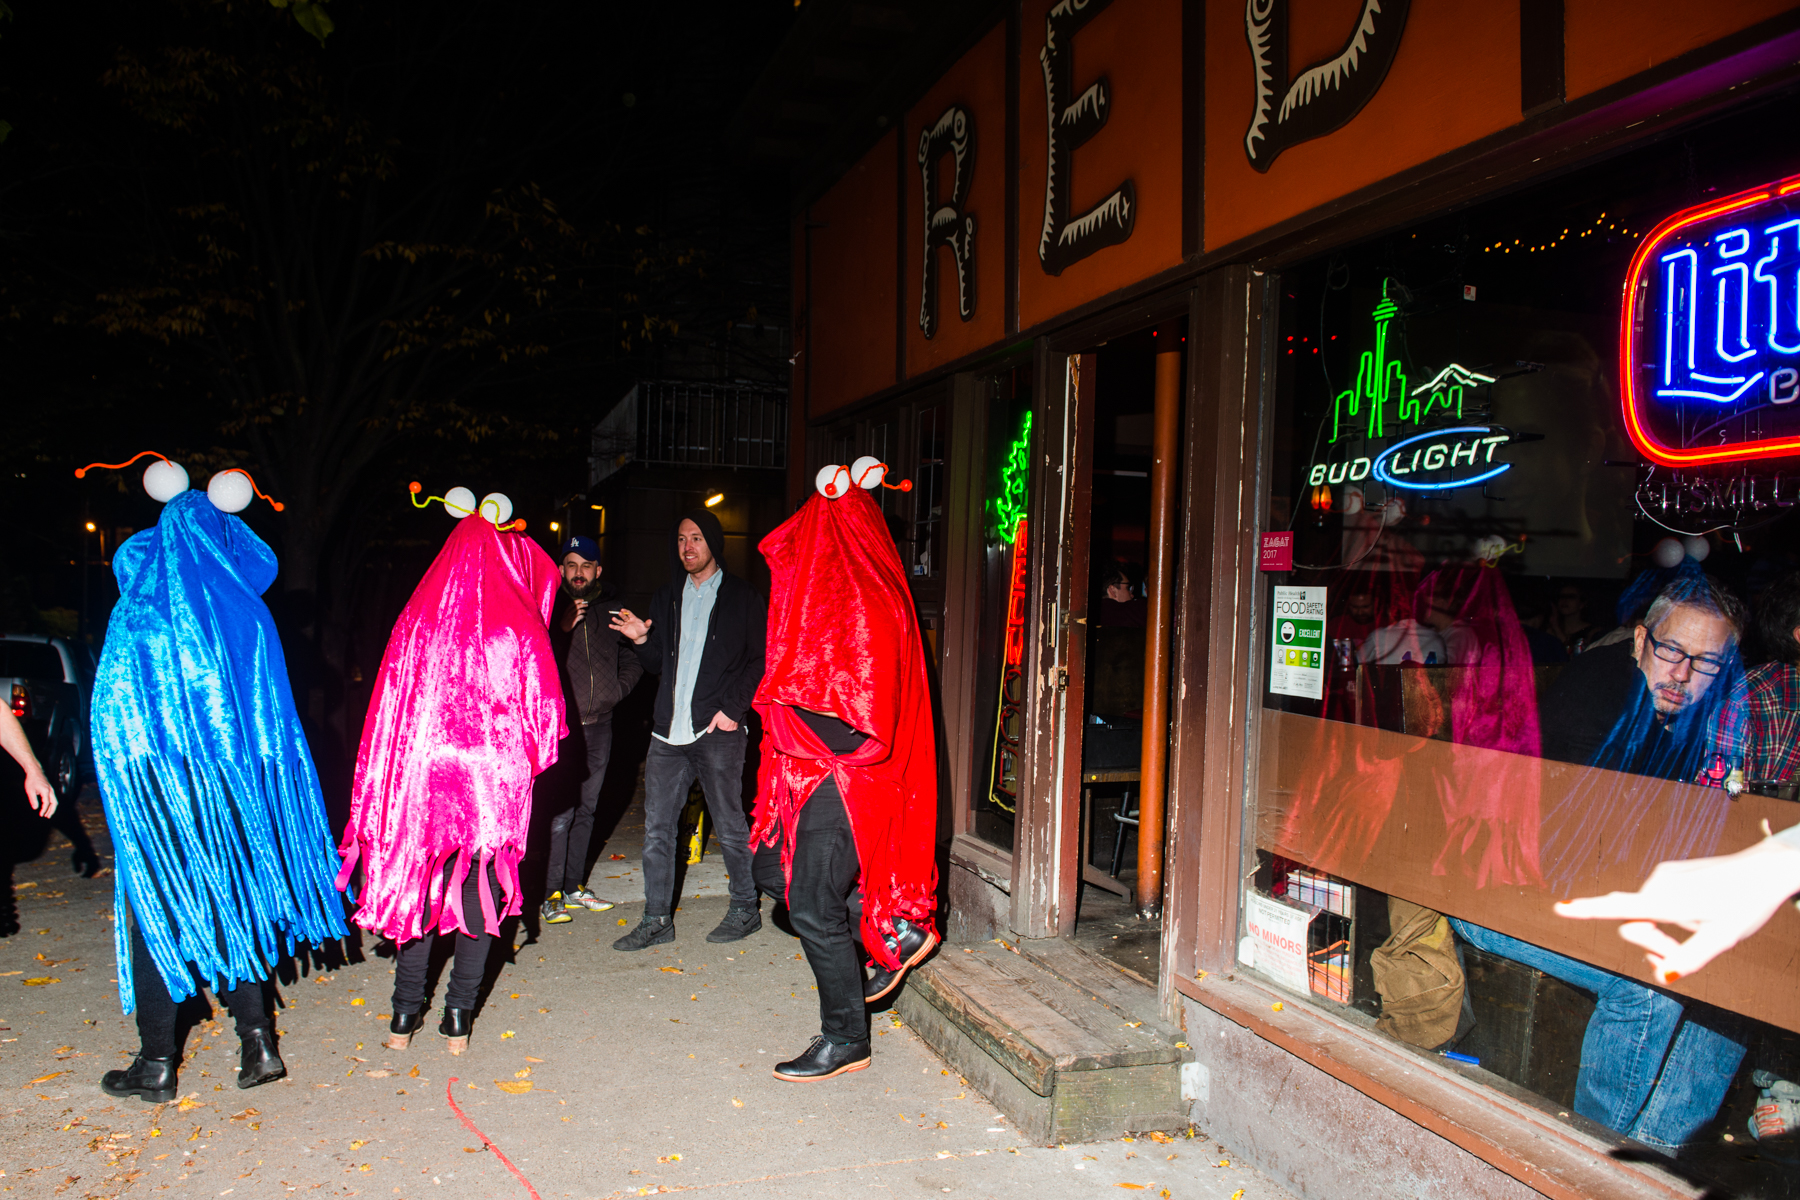 After a couple confusing false alarms, the Redwood finally closed its doors on the eve of Halloween. Shots were had, beers were poured, peanut shells were strewn and a spooky good time was had. After about 12 years together, we have to say we're at a bit of a loss. Thanks for the memories Redwood, you'll be missed! (Image: Chona Kasinger / Seattle Refined)